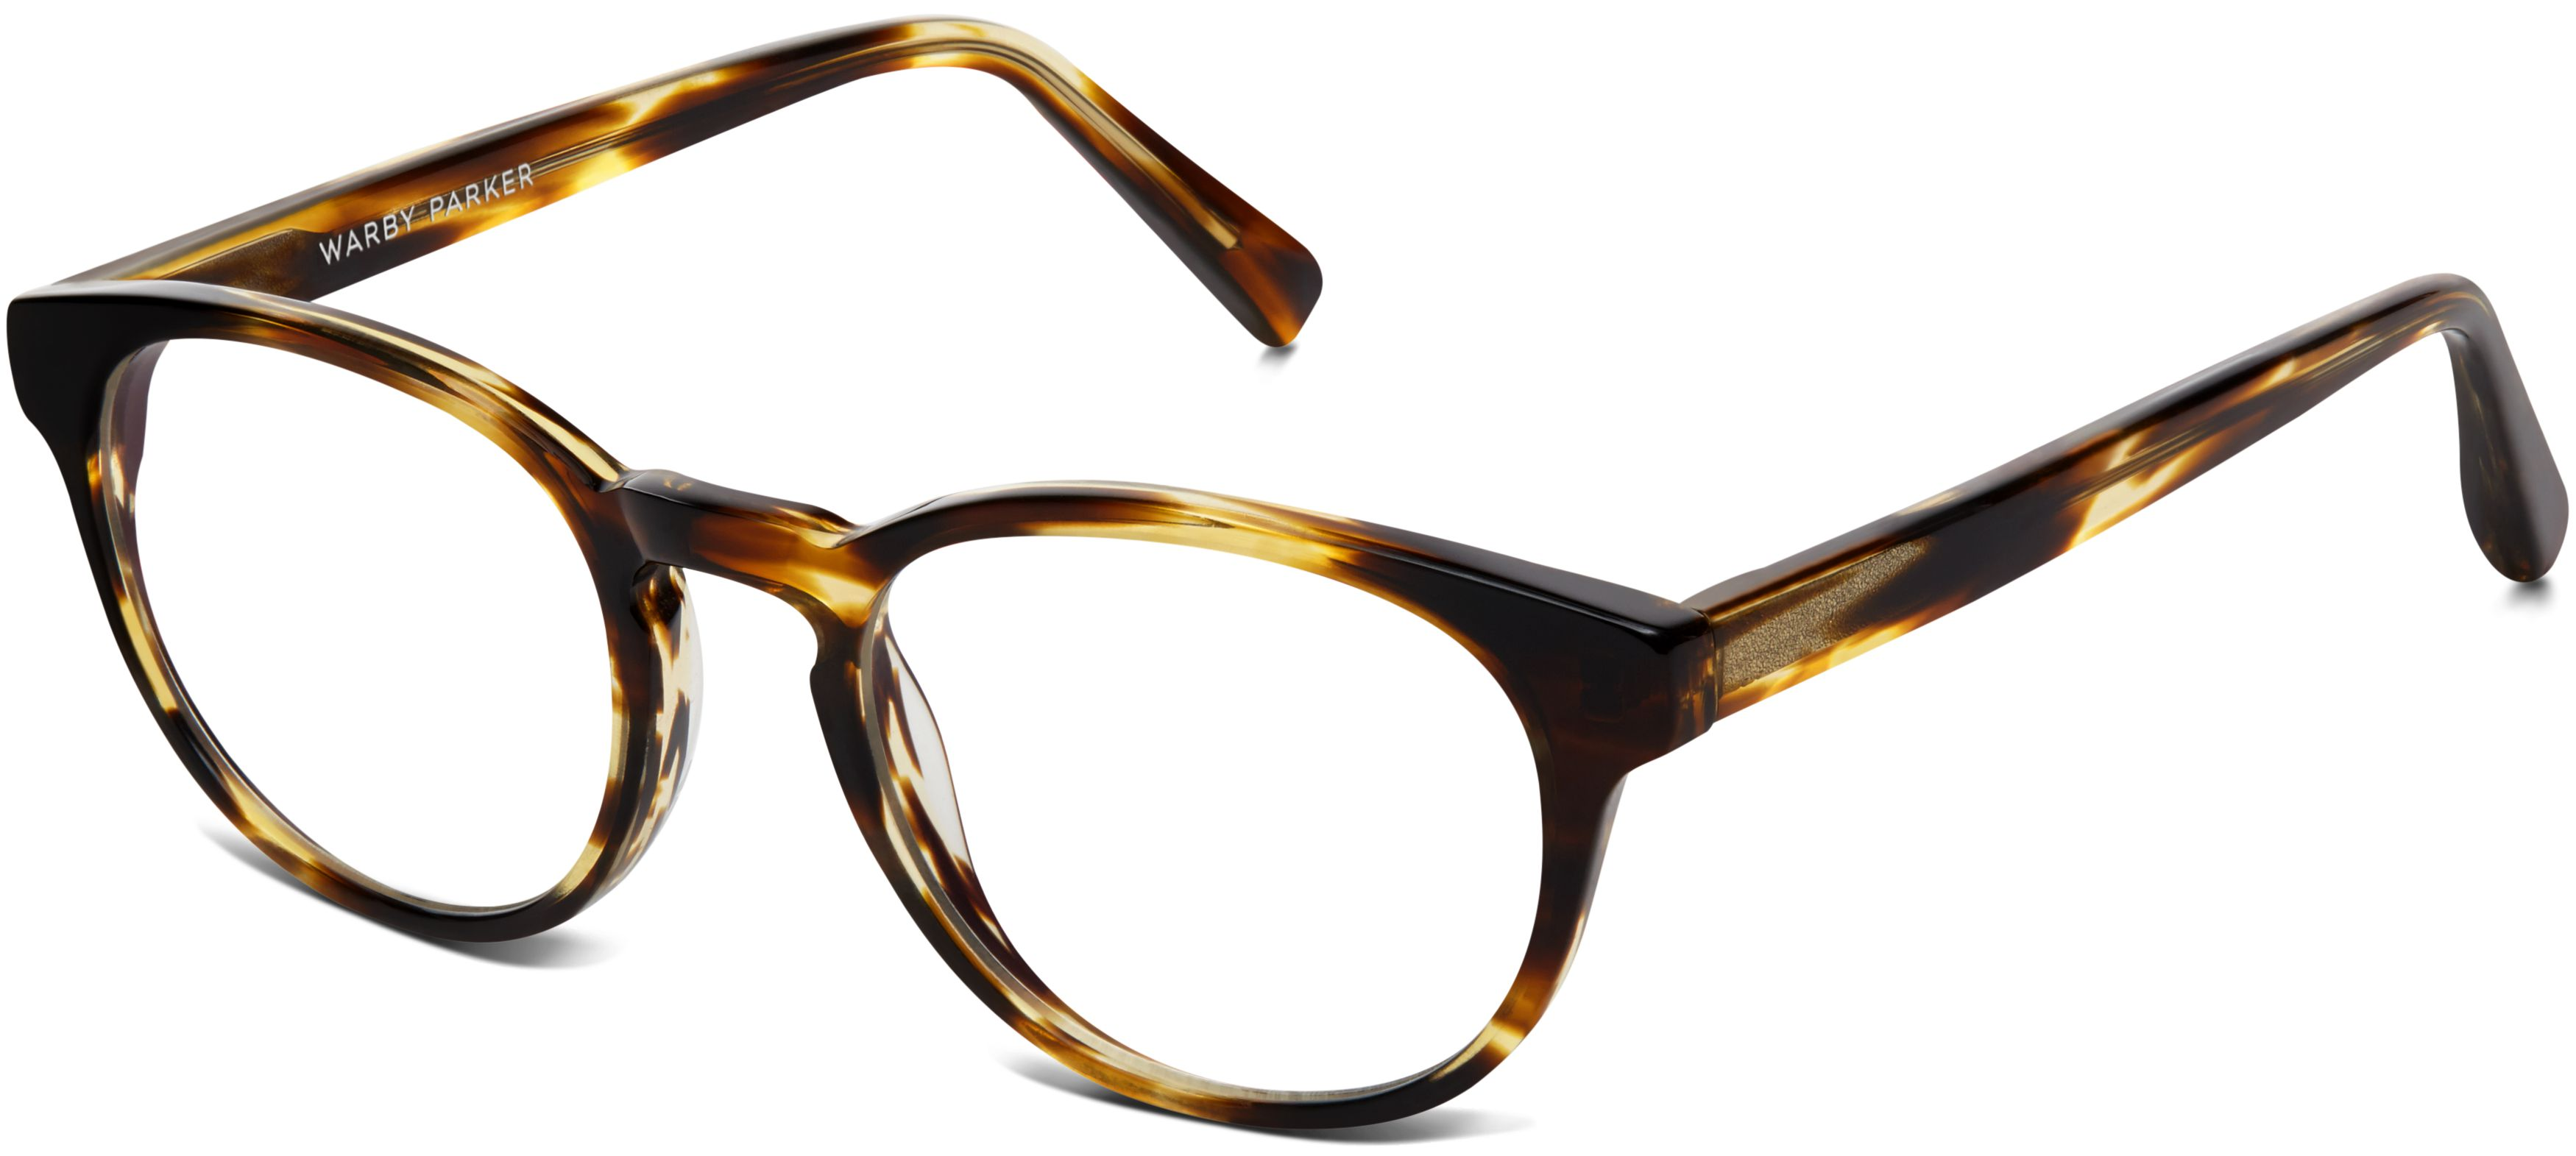 Best Tom Ford Reading Glasses